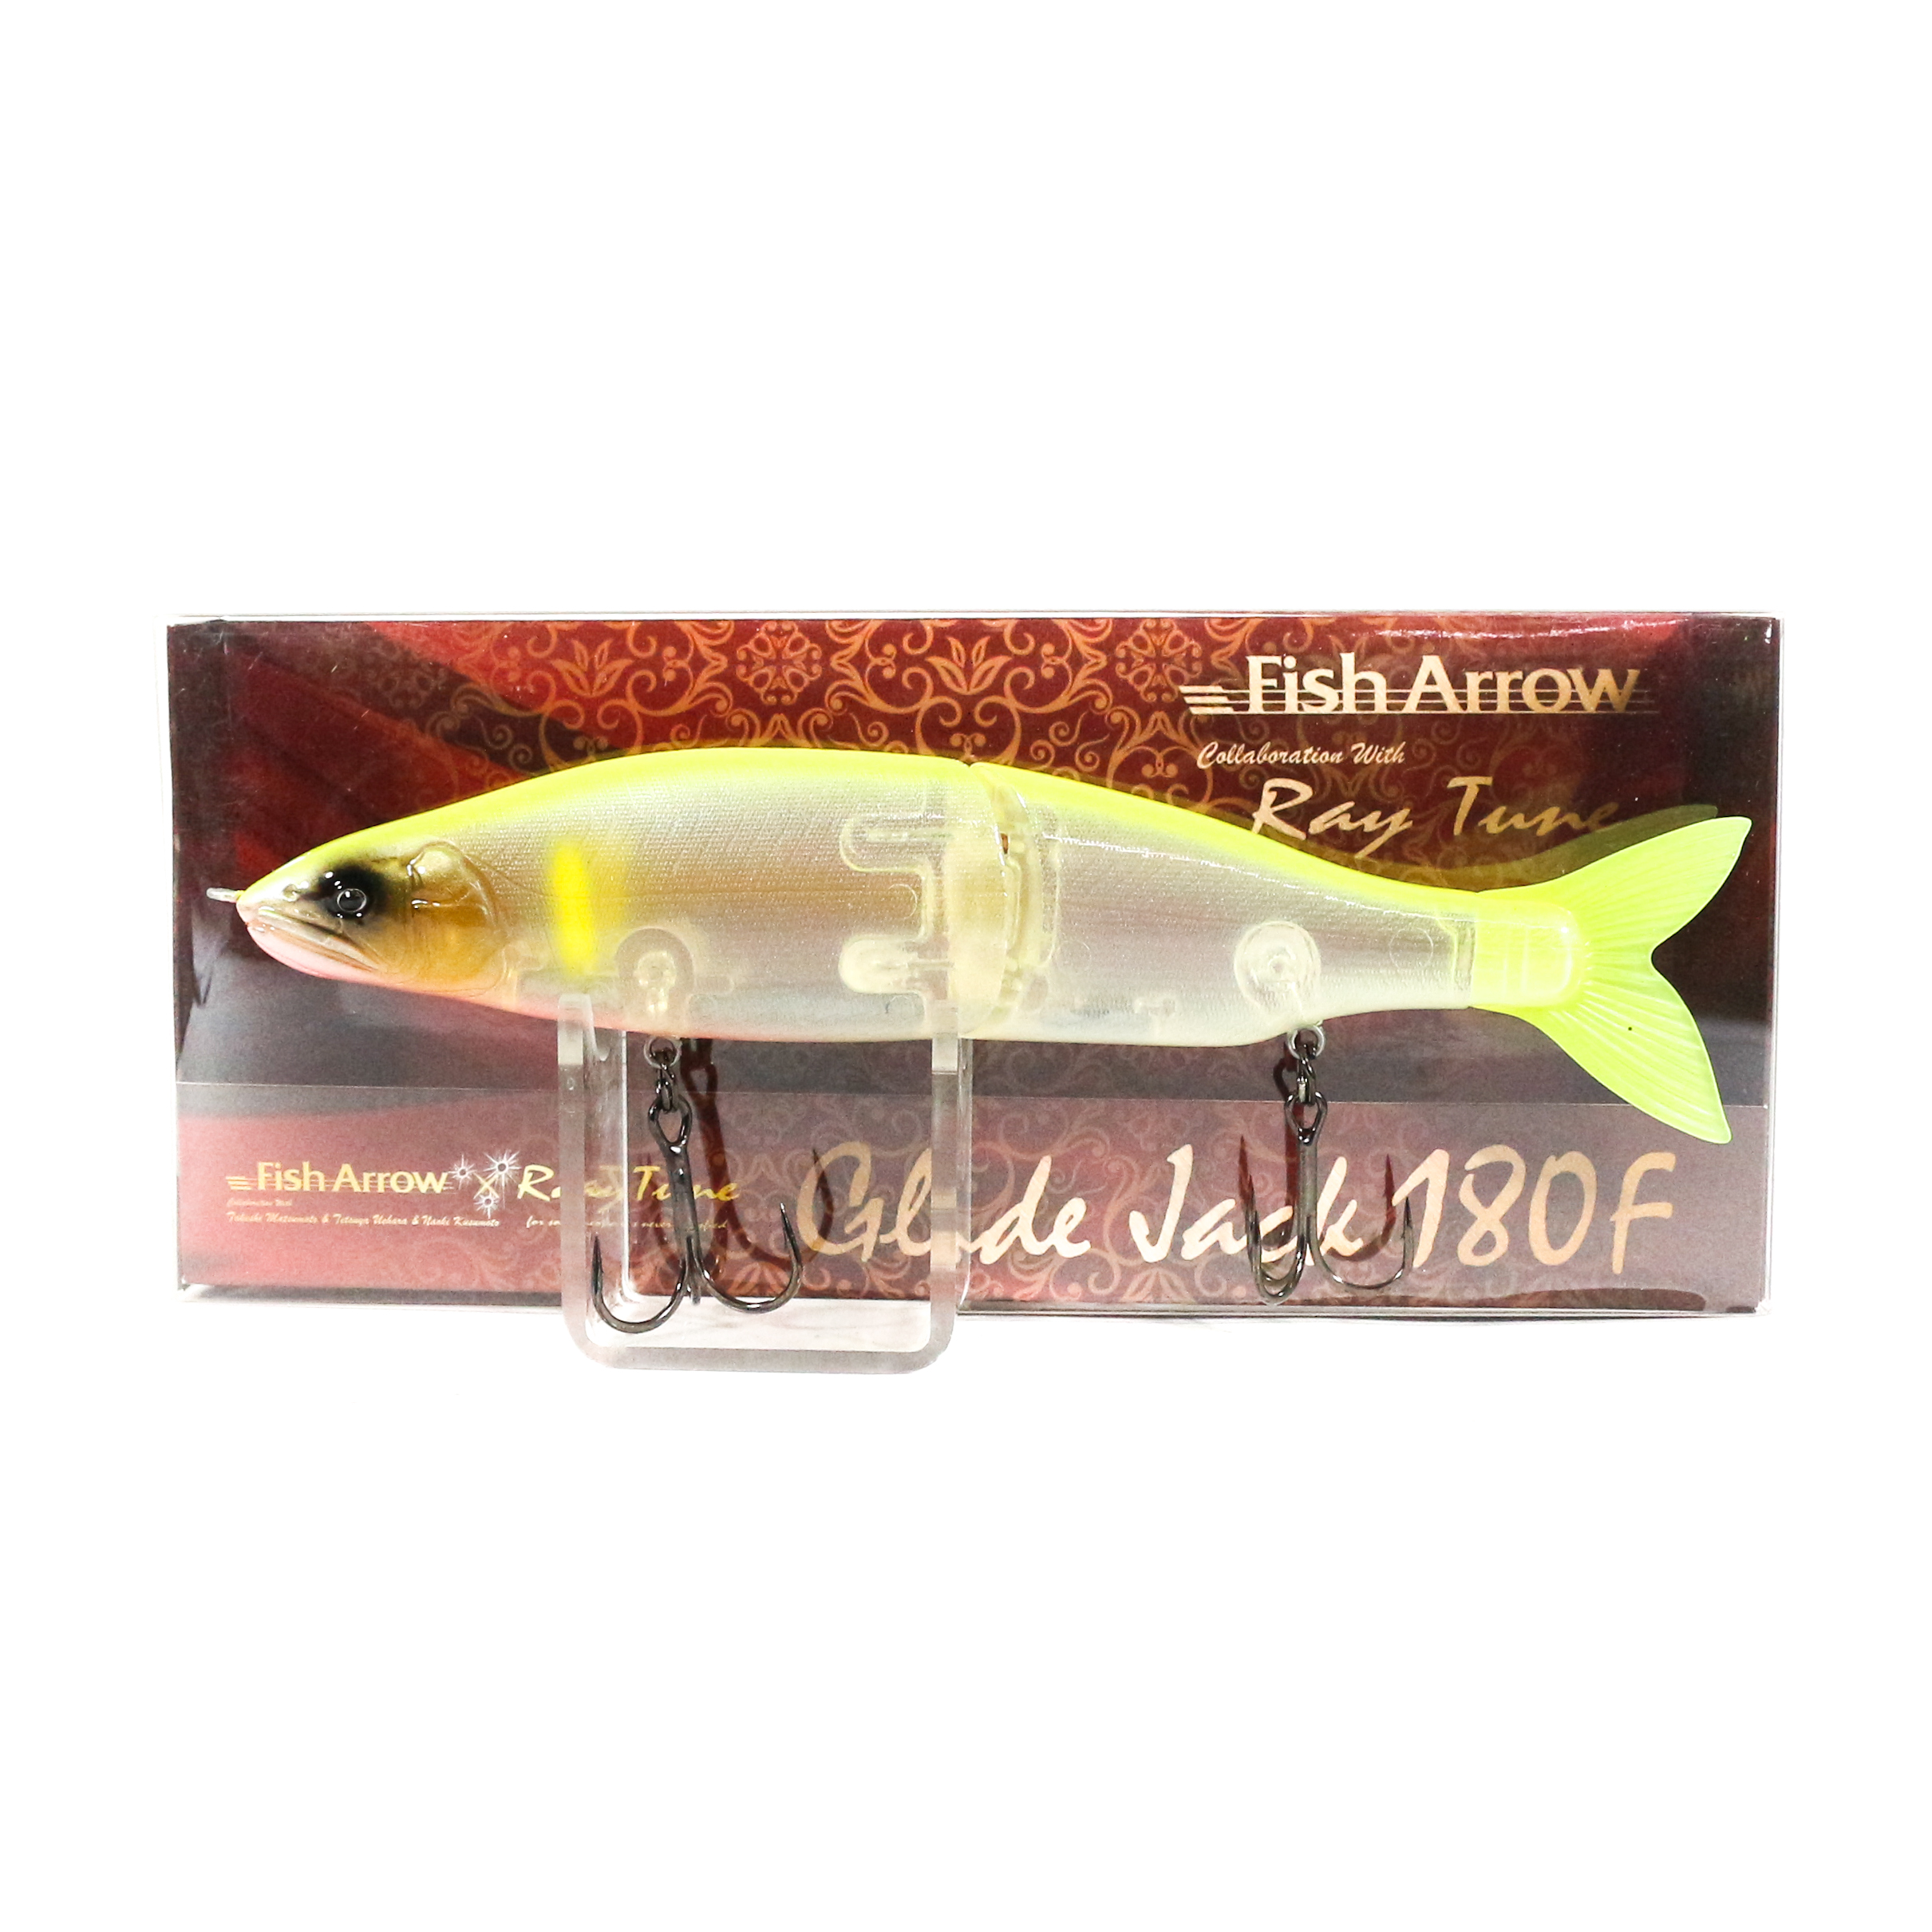 Fish Arrow Glide Jack 180F 57 grams Floating Lure #06 (2343)